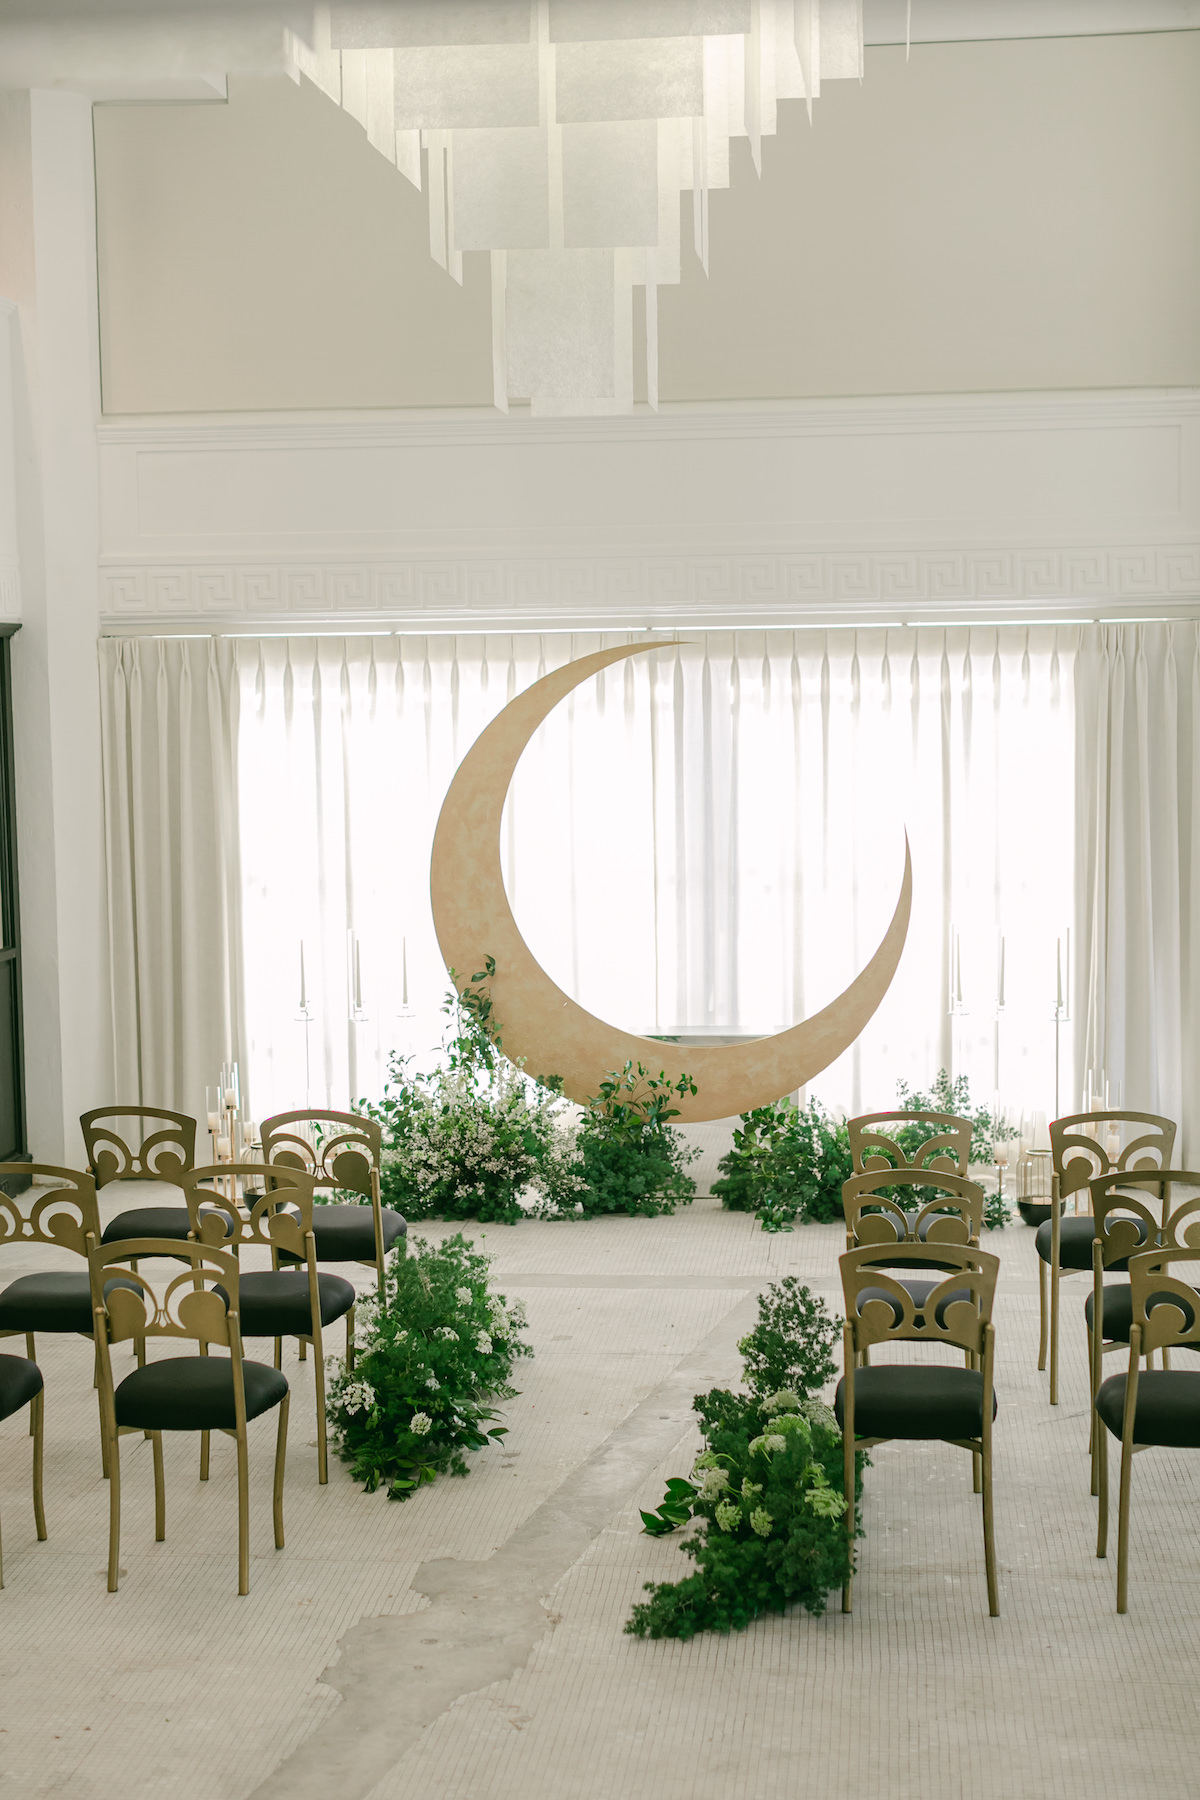 Modern Celestial Wedding Ceremony with Moon arch - Lily Tapia Photography